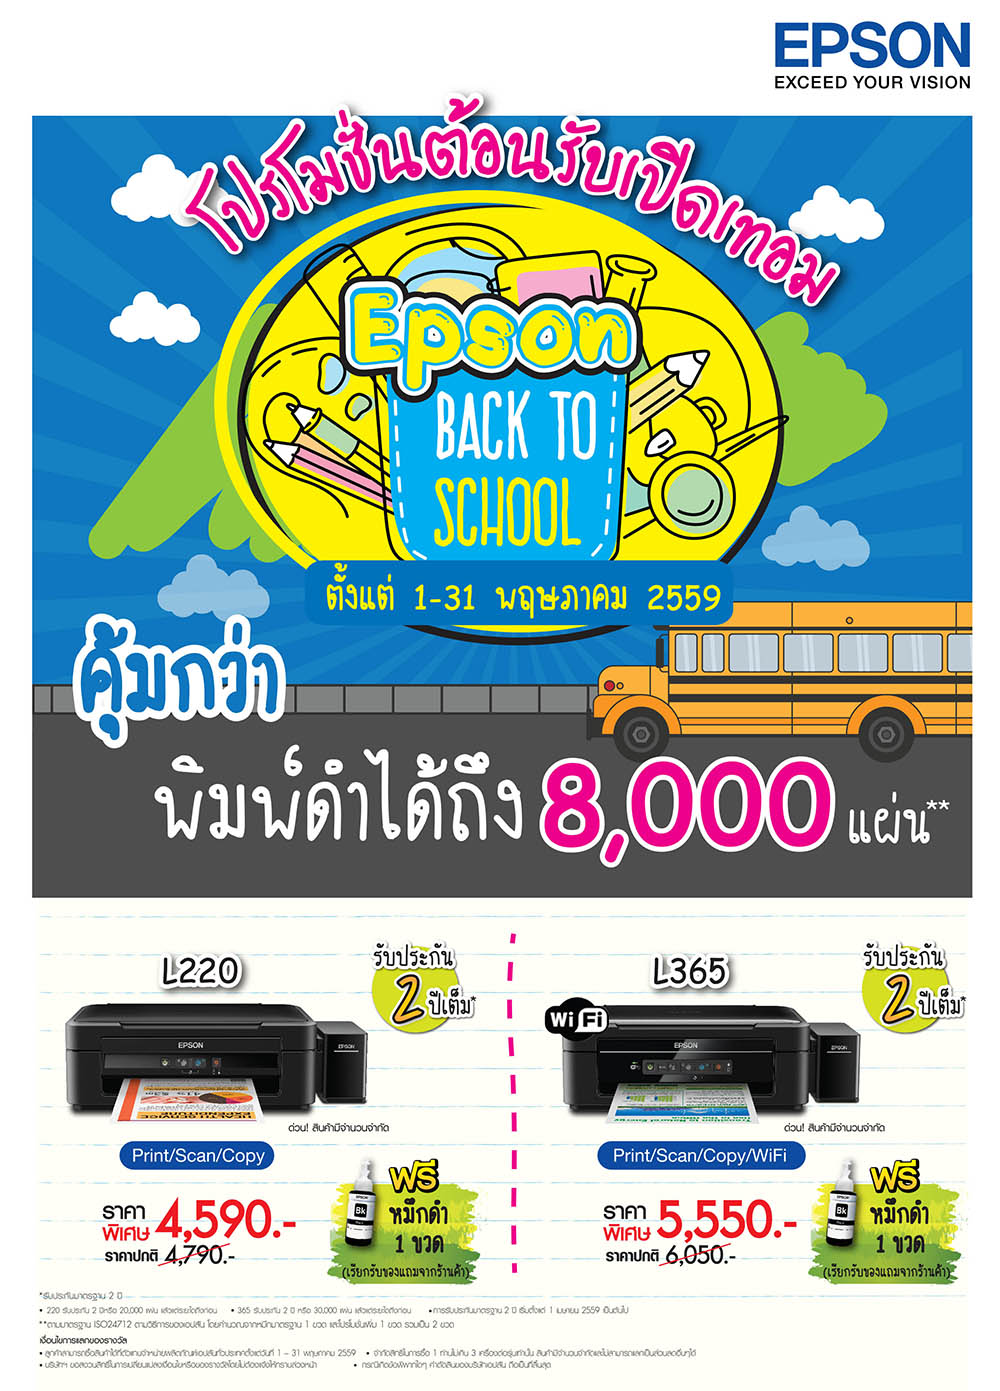 Epson Back to School